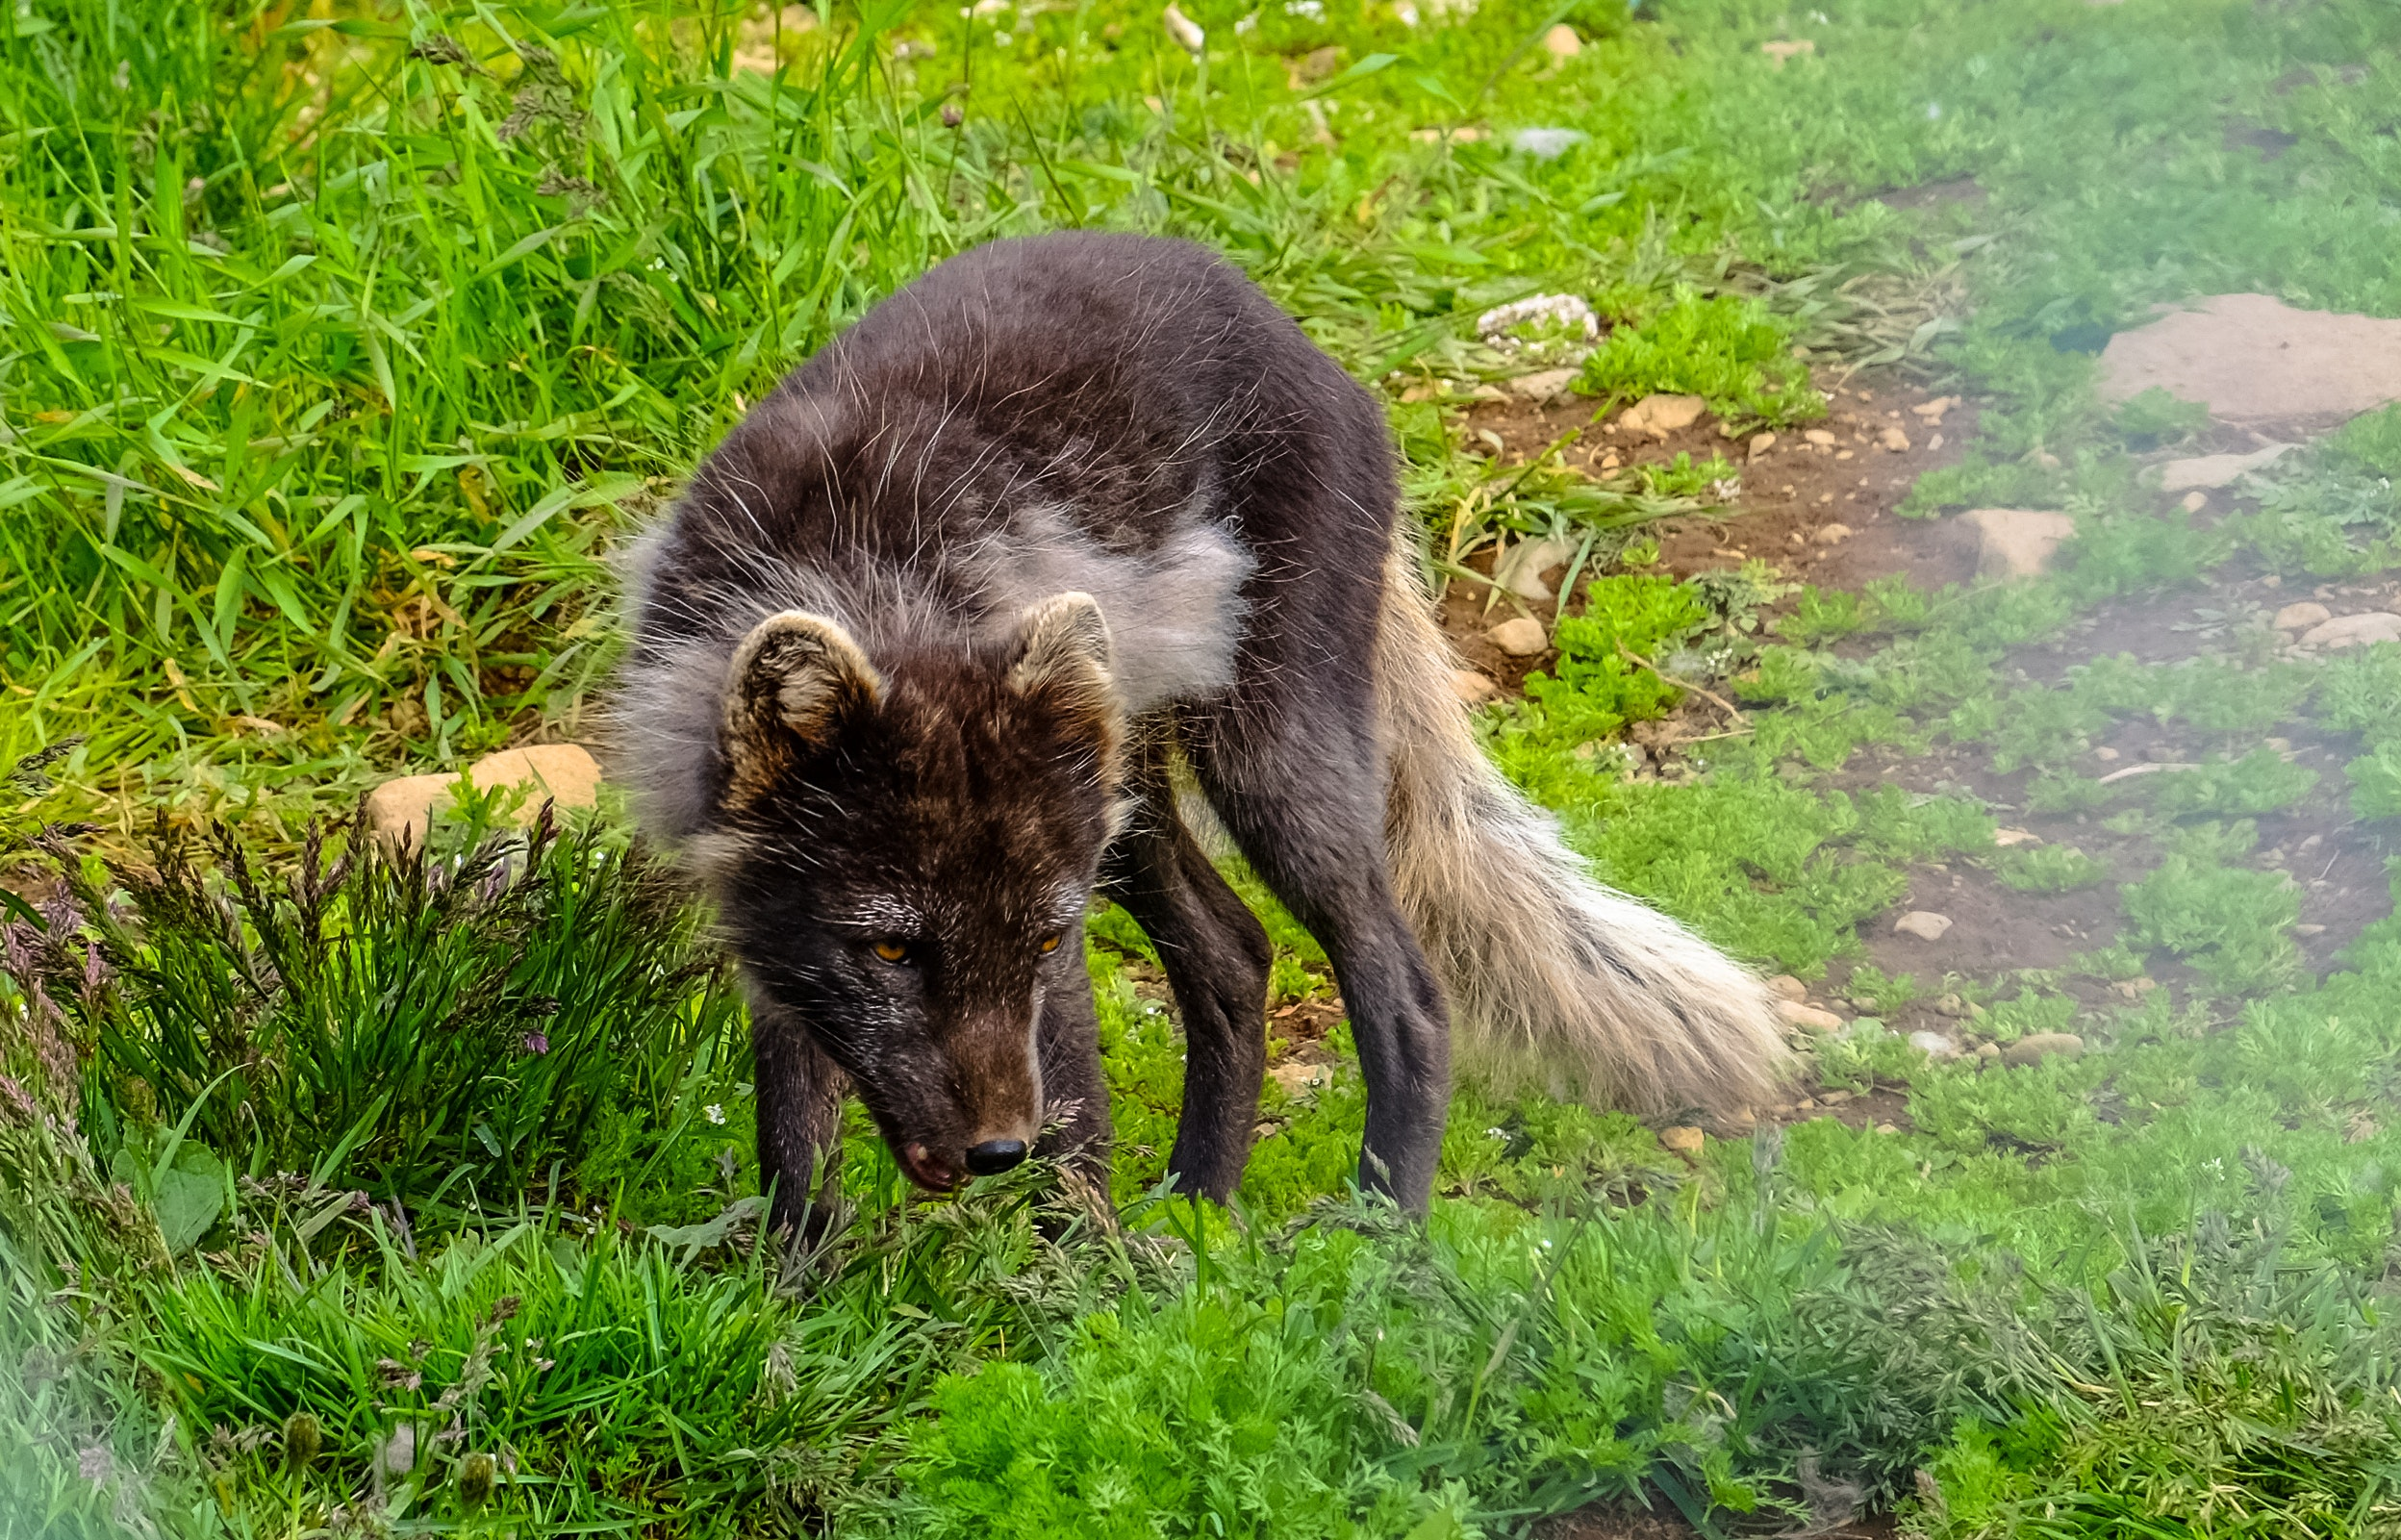 Brown Fox In Green Grass Field During Daytime 183 Free Stock